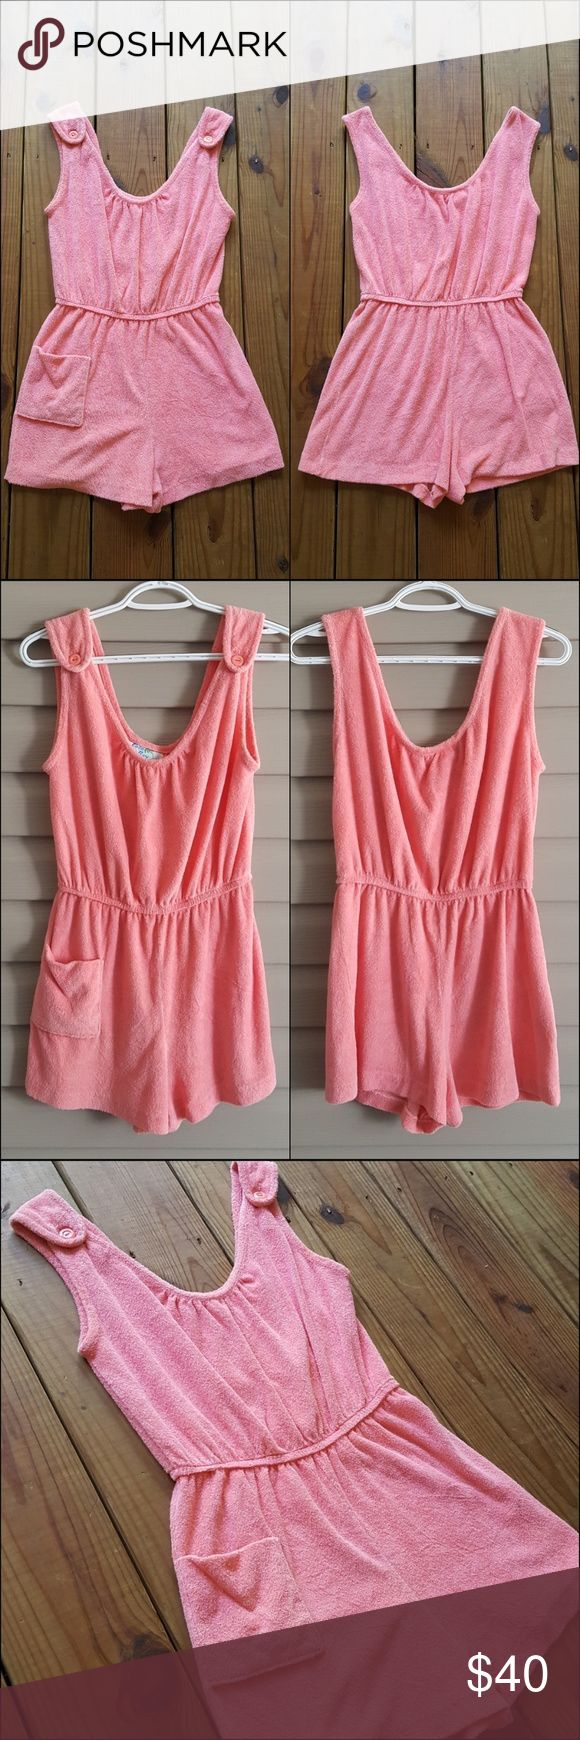 Vintage 70's 80's coral terrycloth button romper Vintage 70's 80's Coco Bay coral romper!! Soft and comfy terry cloth material. Straps button at the shoulders. Scoop neck and back. Elastic waist. One front pocket. Easy to slip on and go. Has been washed. Great condition!! I may have a hard time letting this one go but it's up for sale.. for now. It's a little loose on a XS so may be best for a Small or  maybe a smaller Medium. See measurements below.  Happy to answer any questions :) Coco…